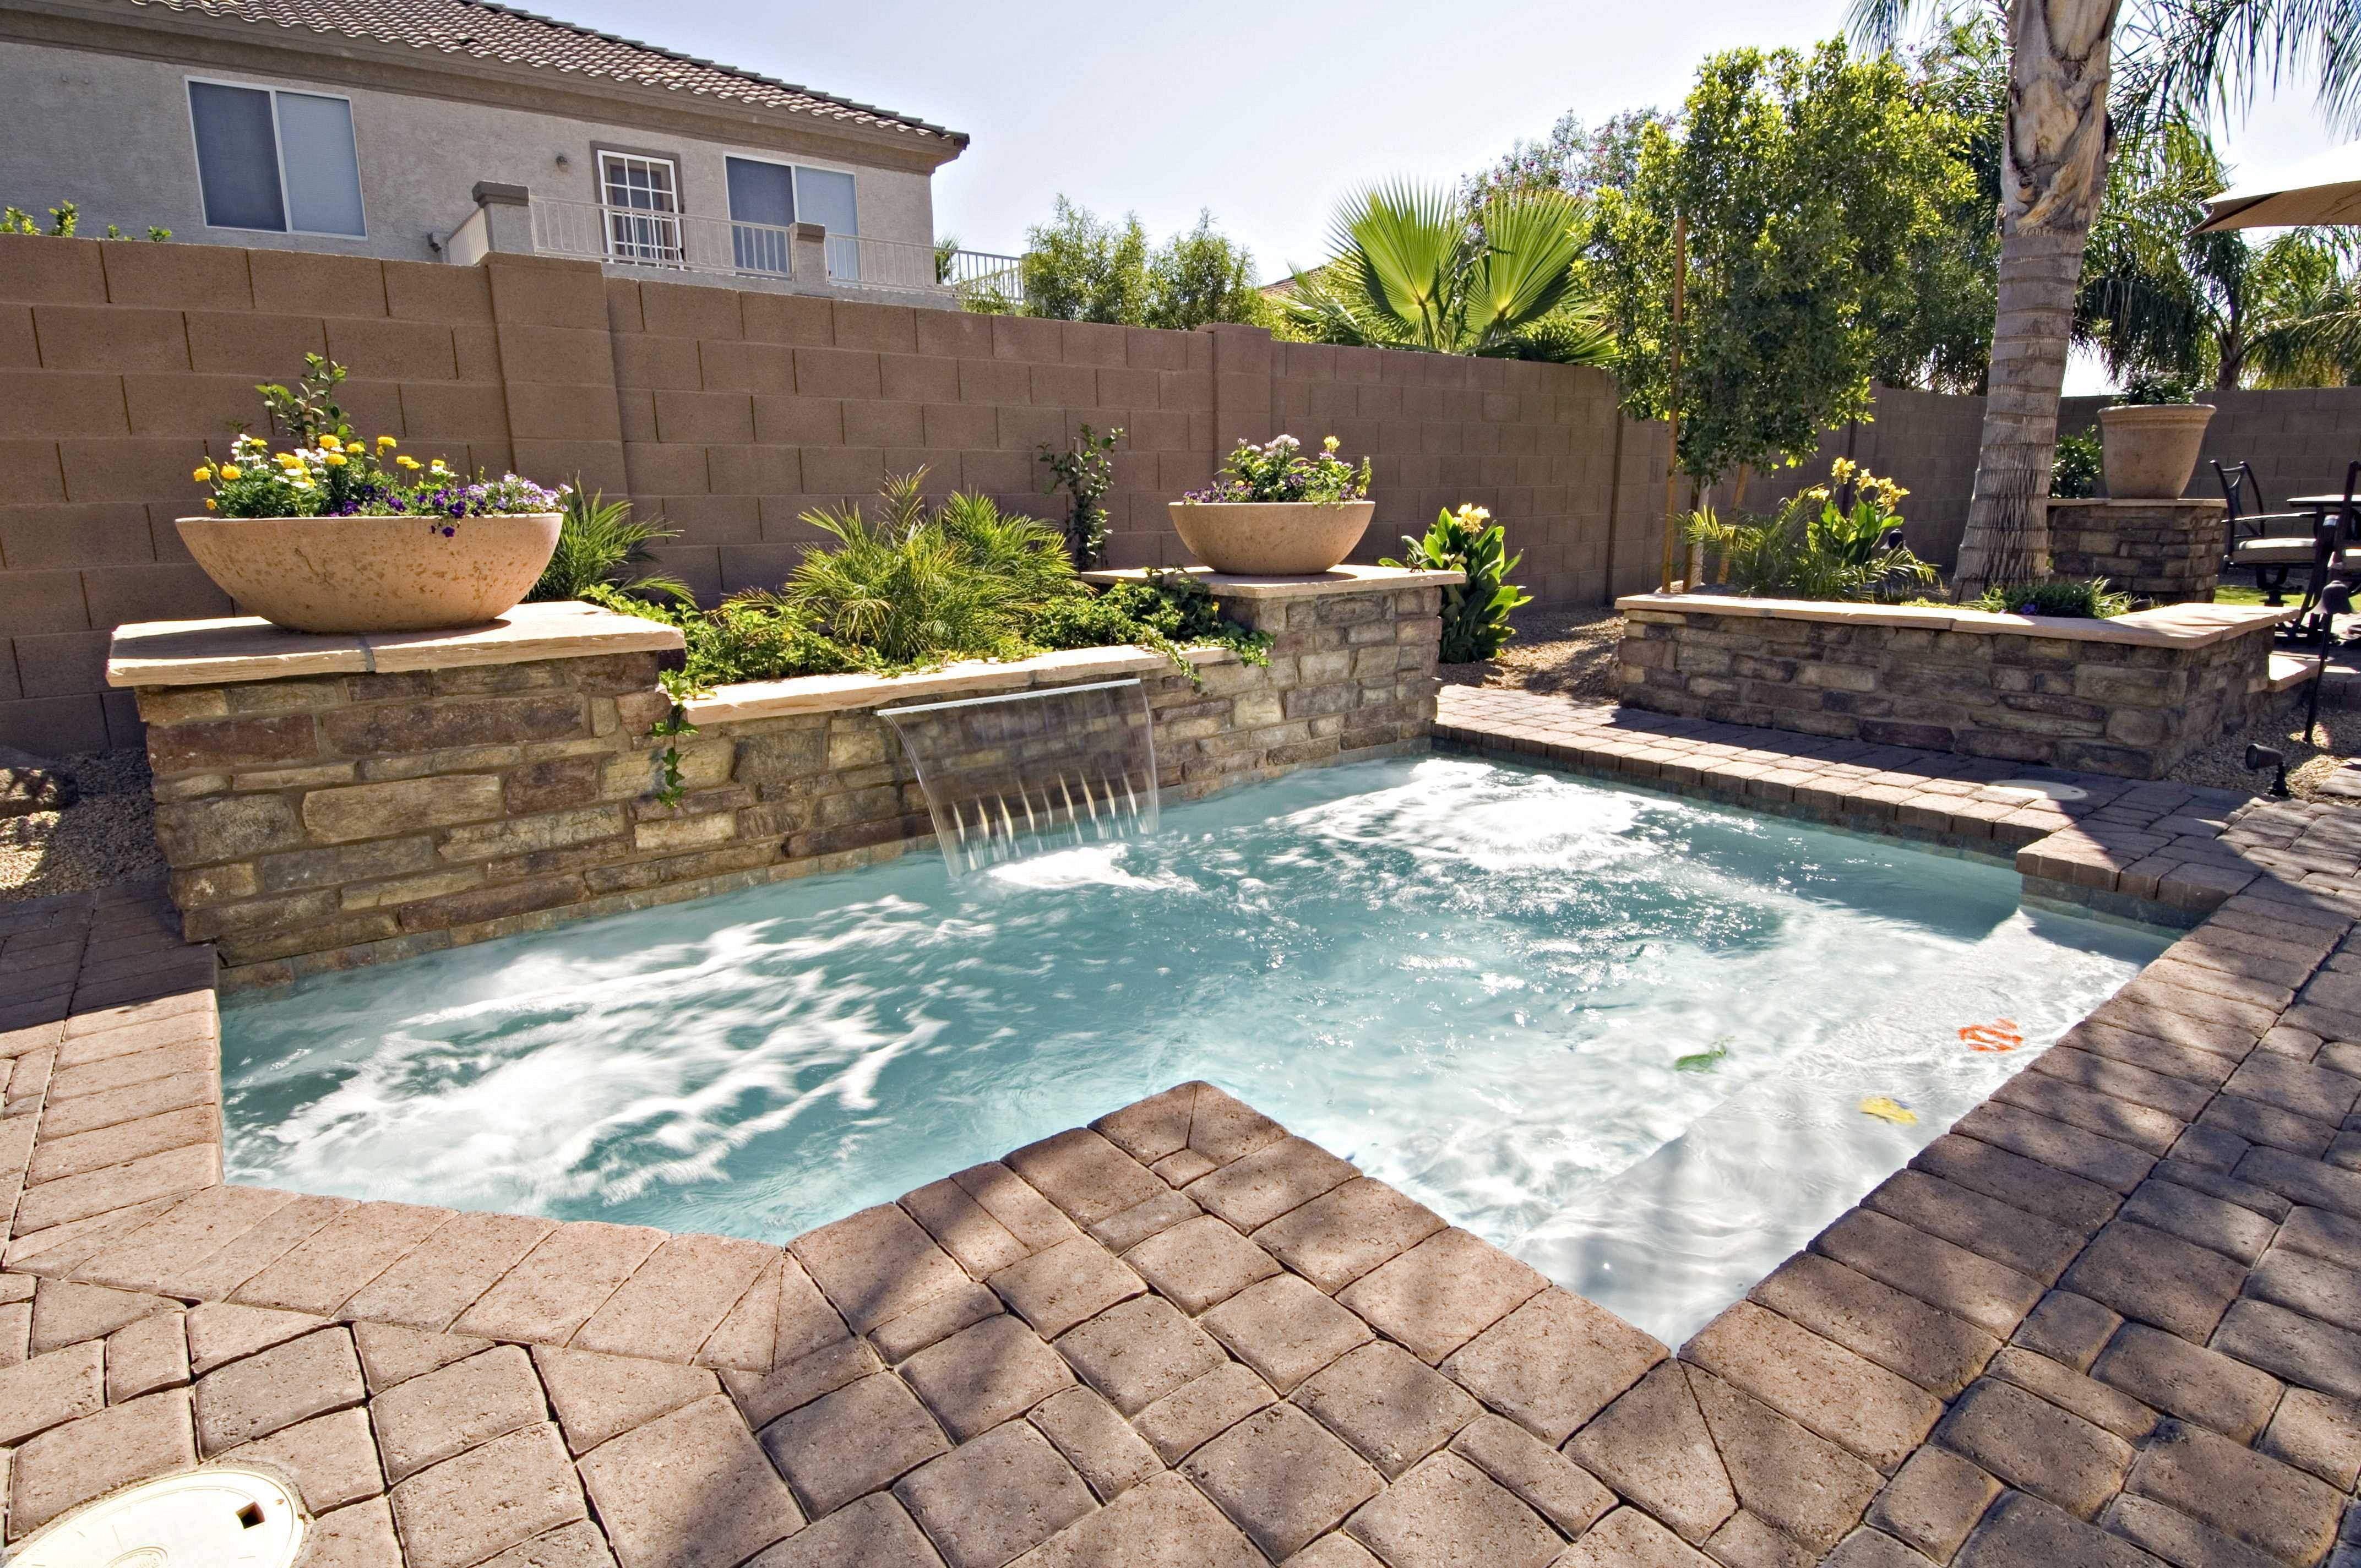 Pool Garten Eckig 15 Incredible Backyard Pool Ideas You May Have On Your Home